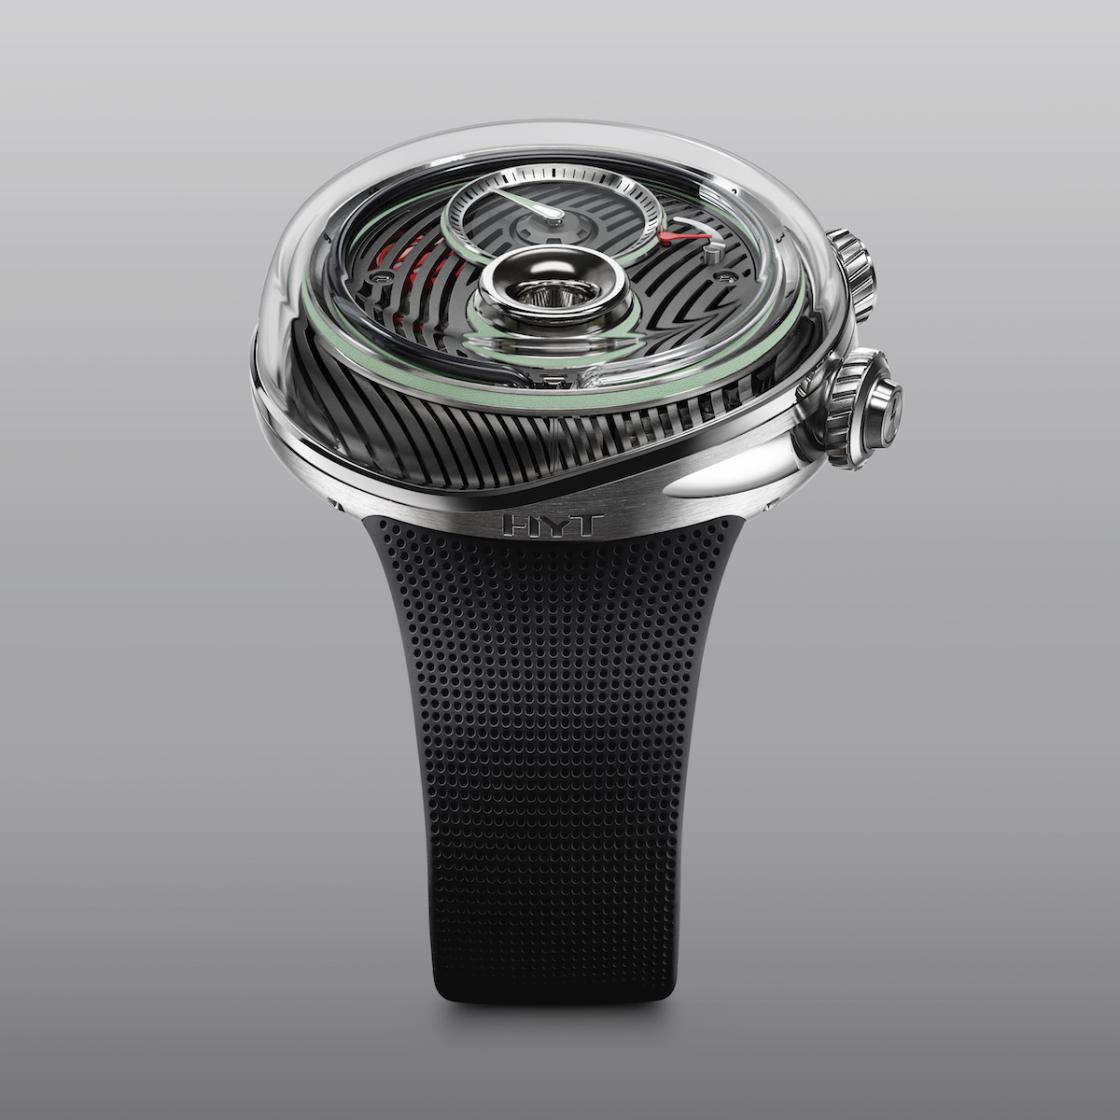 Introducing the new Flow timepieces from HYT